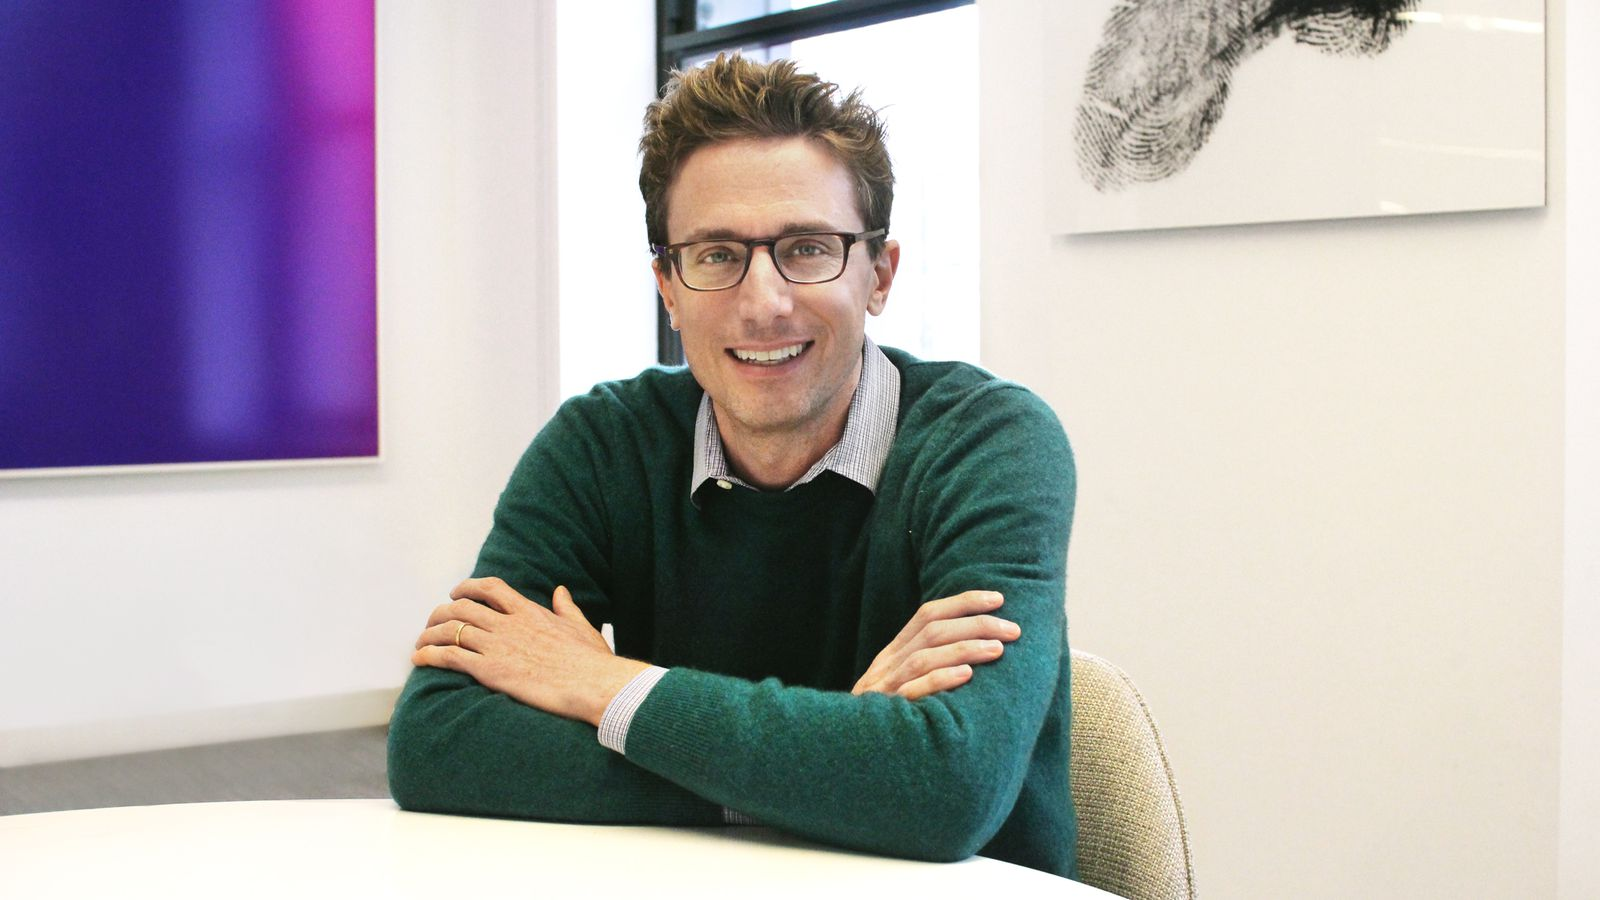 Jonah Peretti BuzzFeed CEO Jonah Peretti 39It39s not just a site it39s a